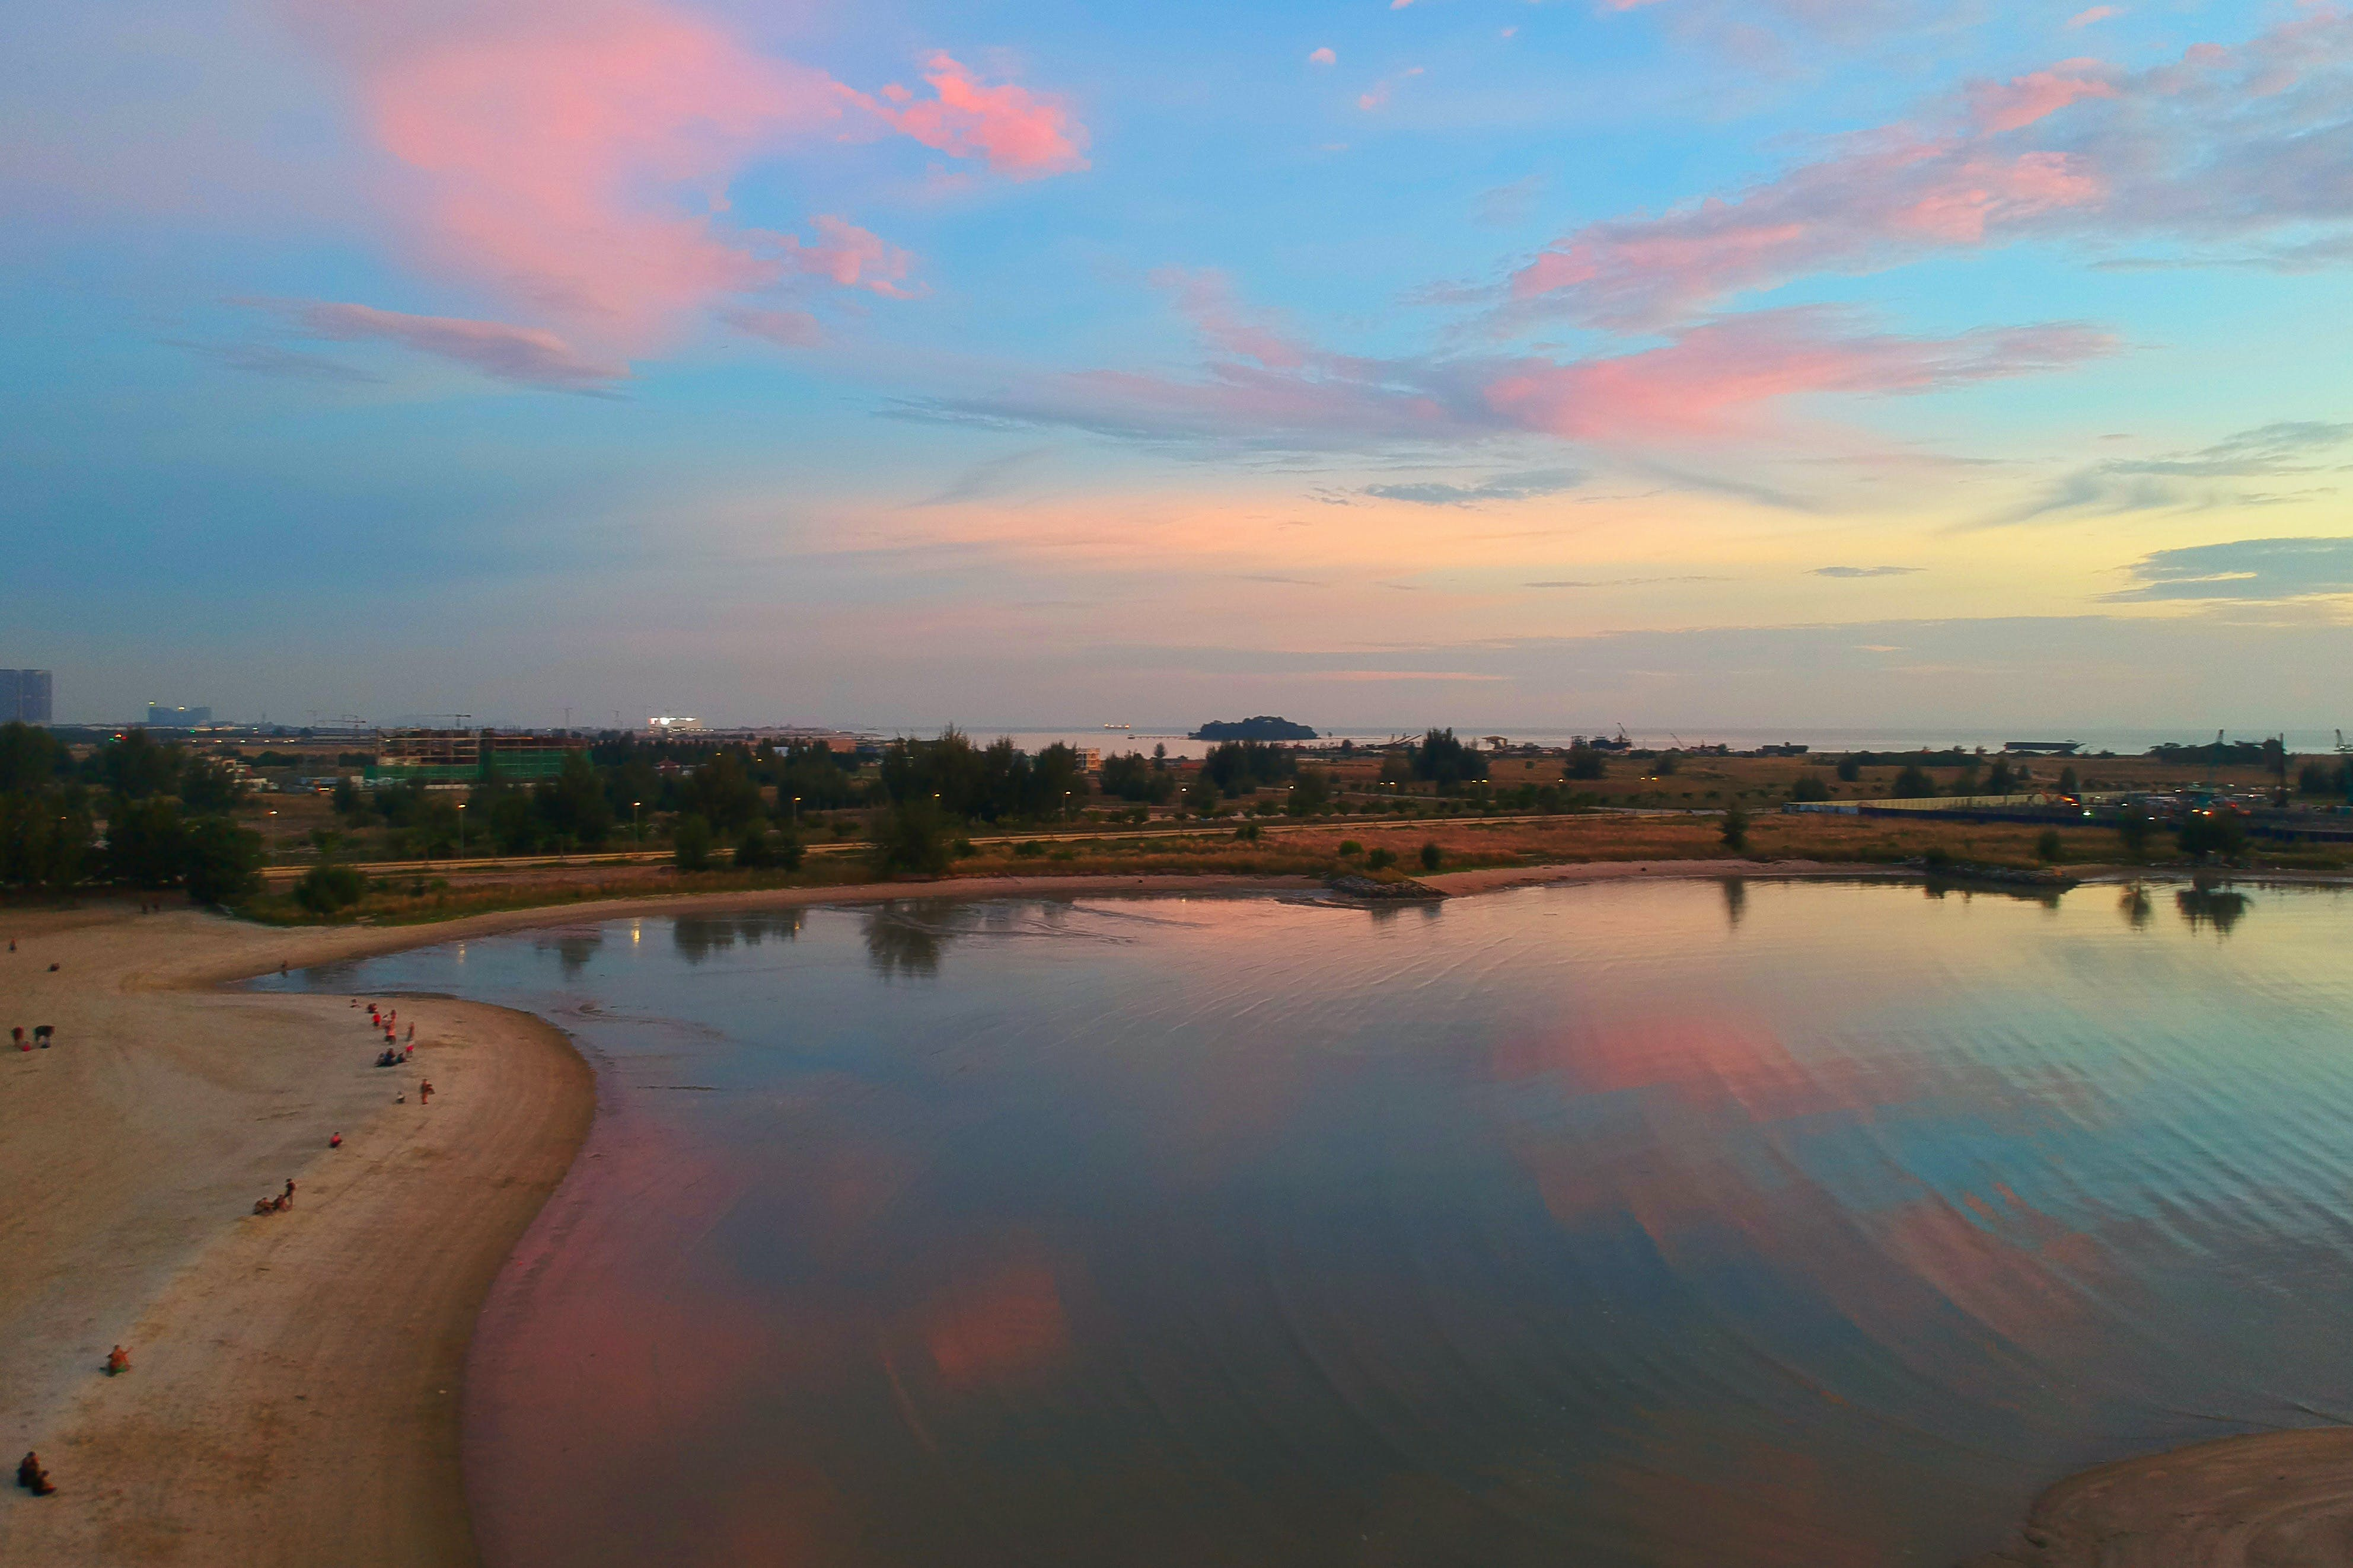 Photo of Body of Water Under Pink Skies